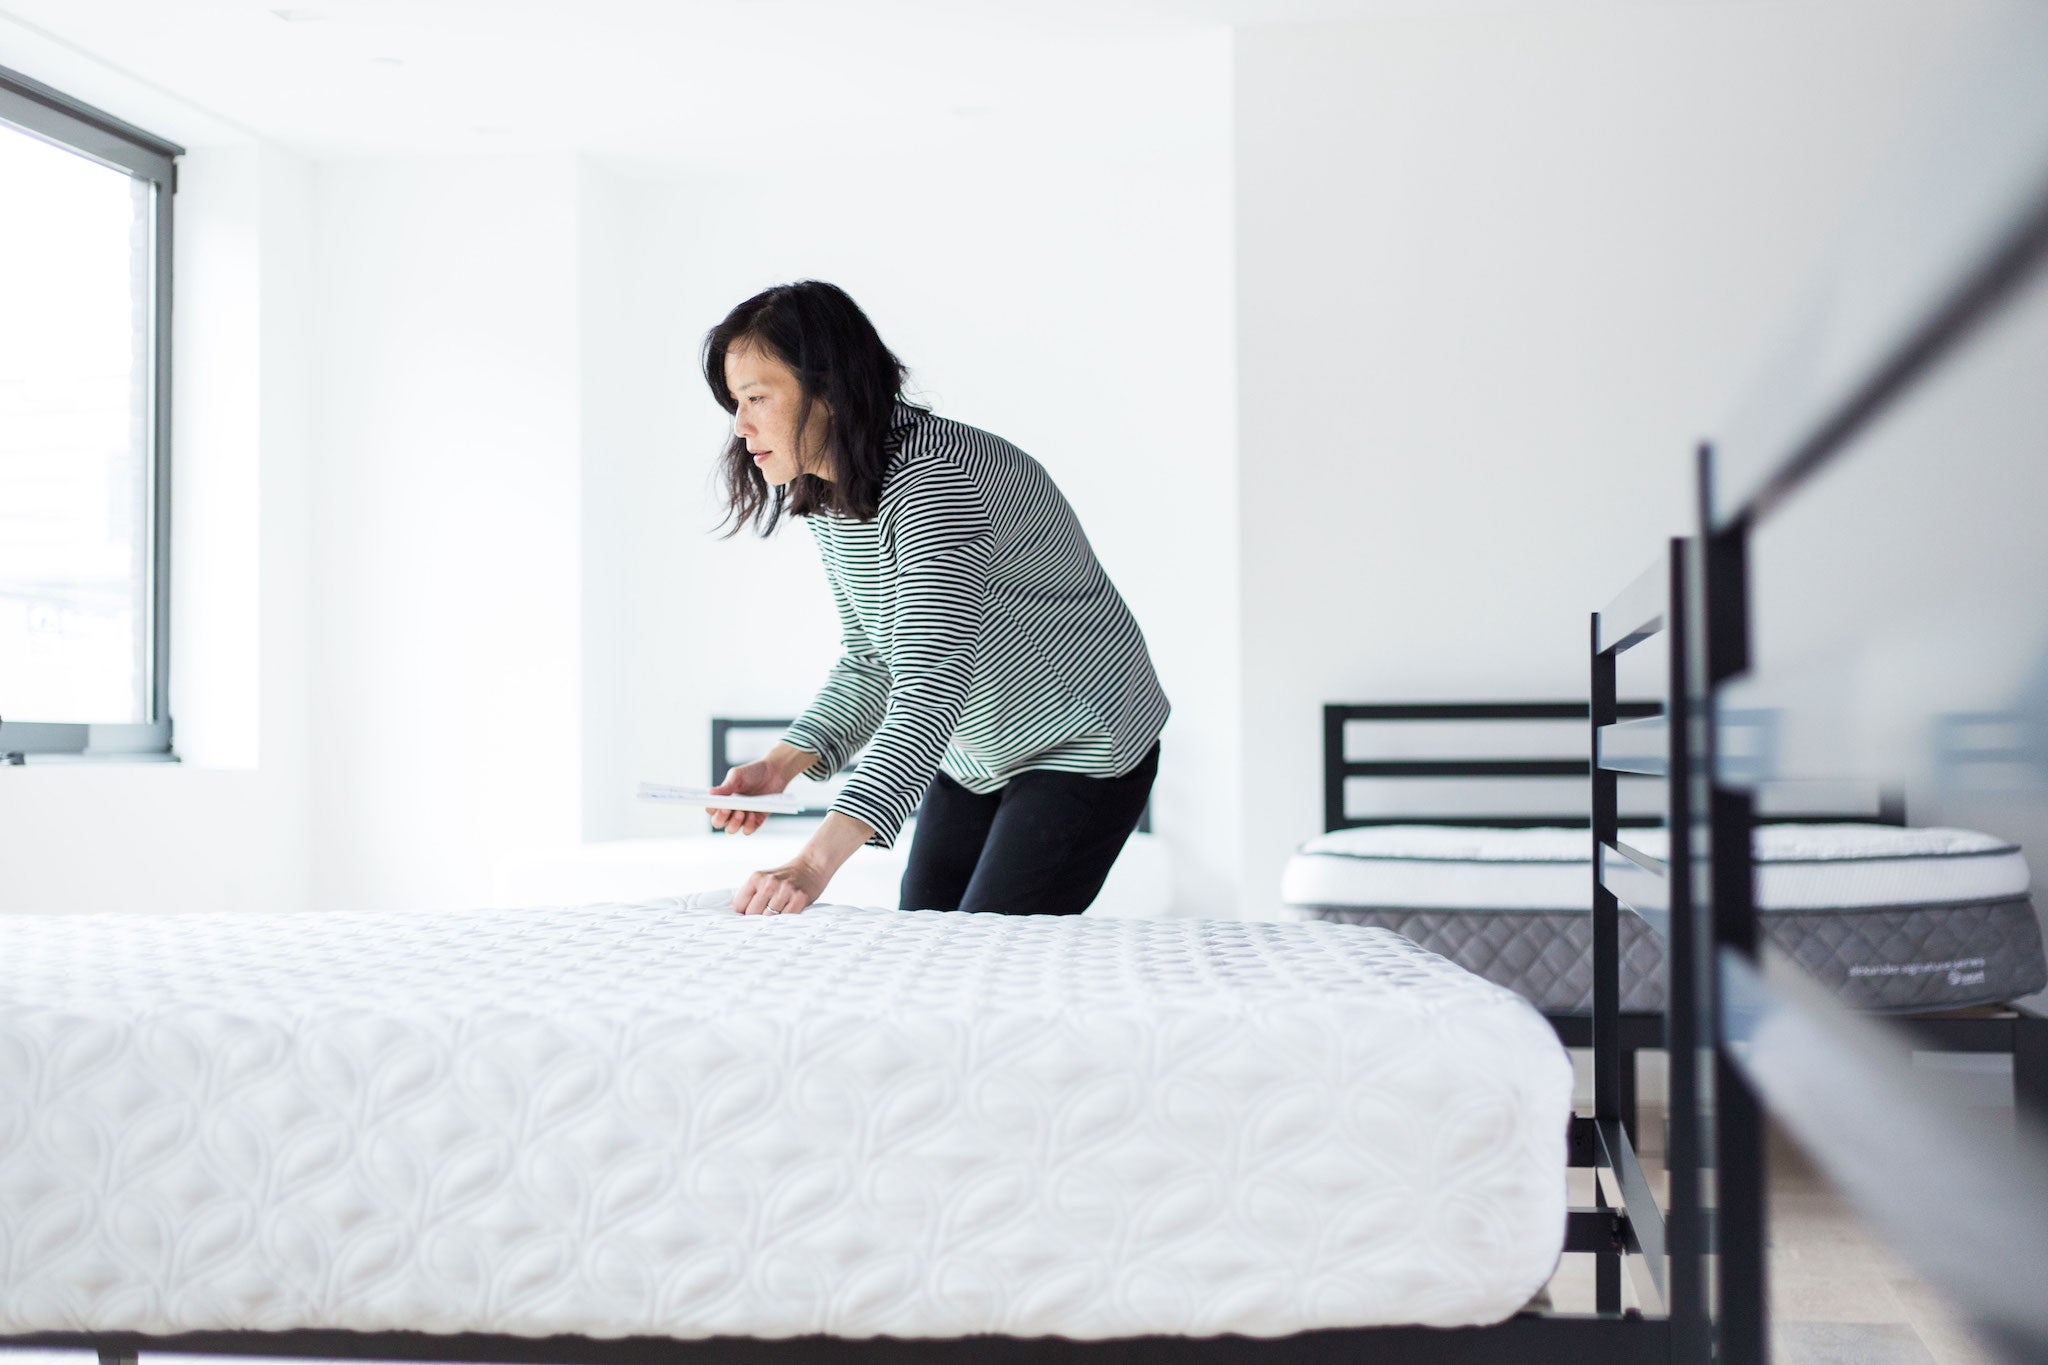 mattress buying guide 2021 what to